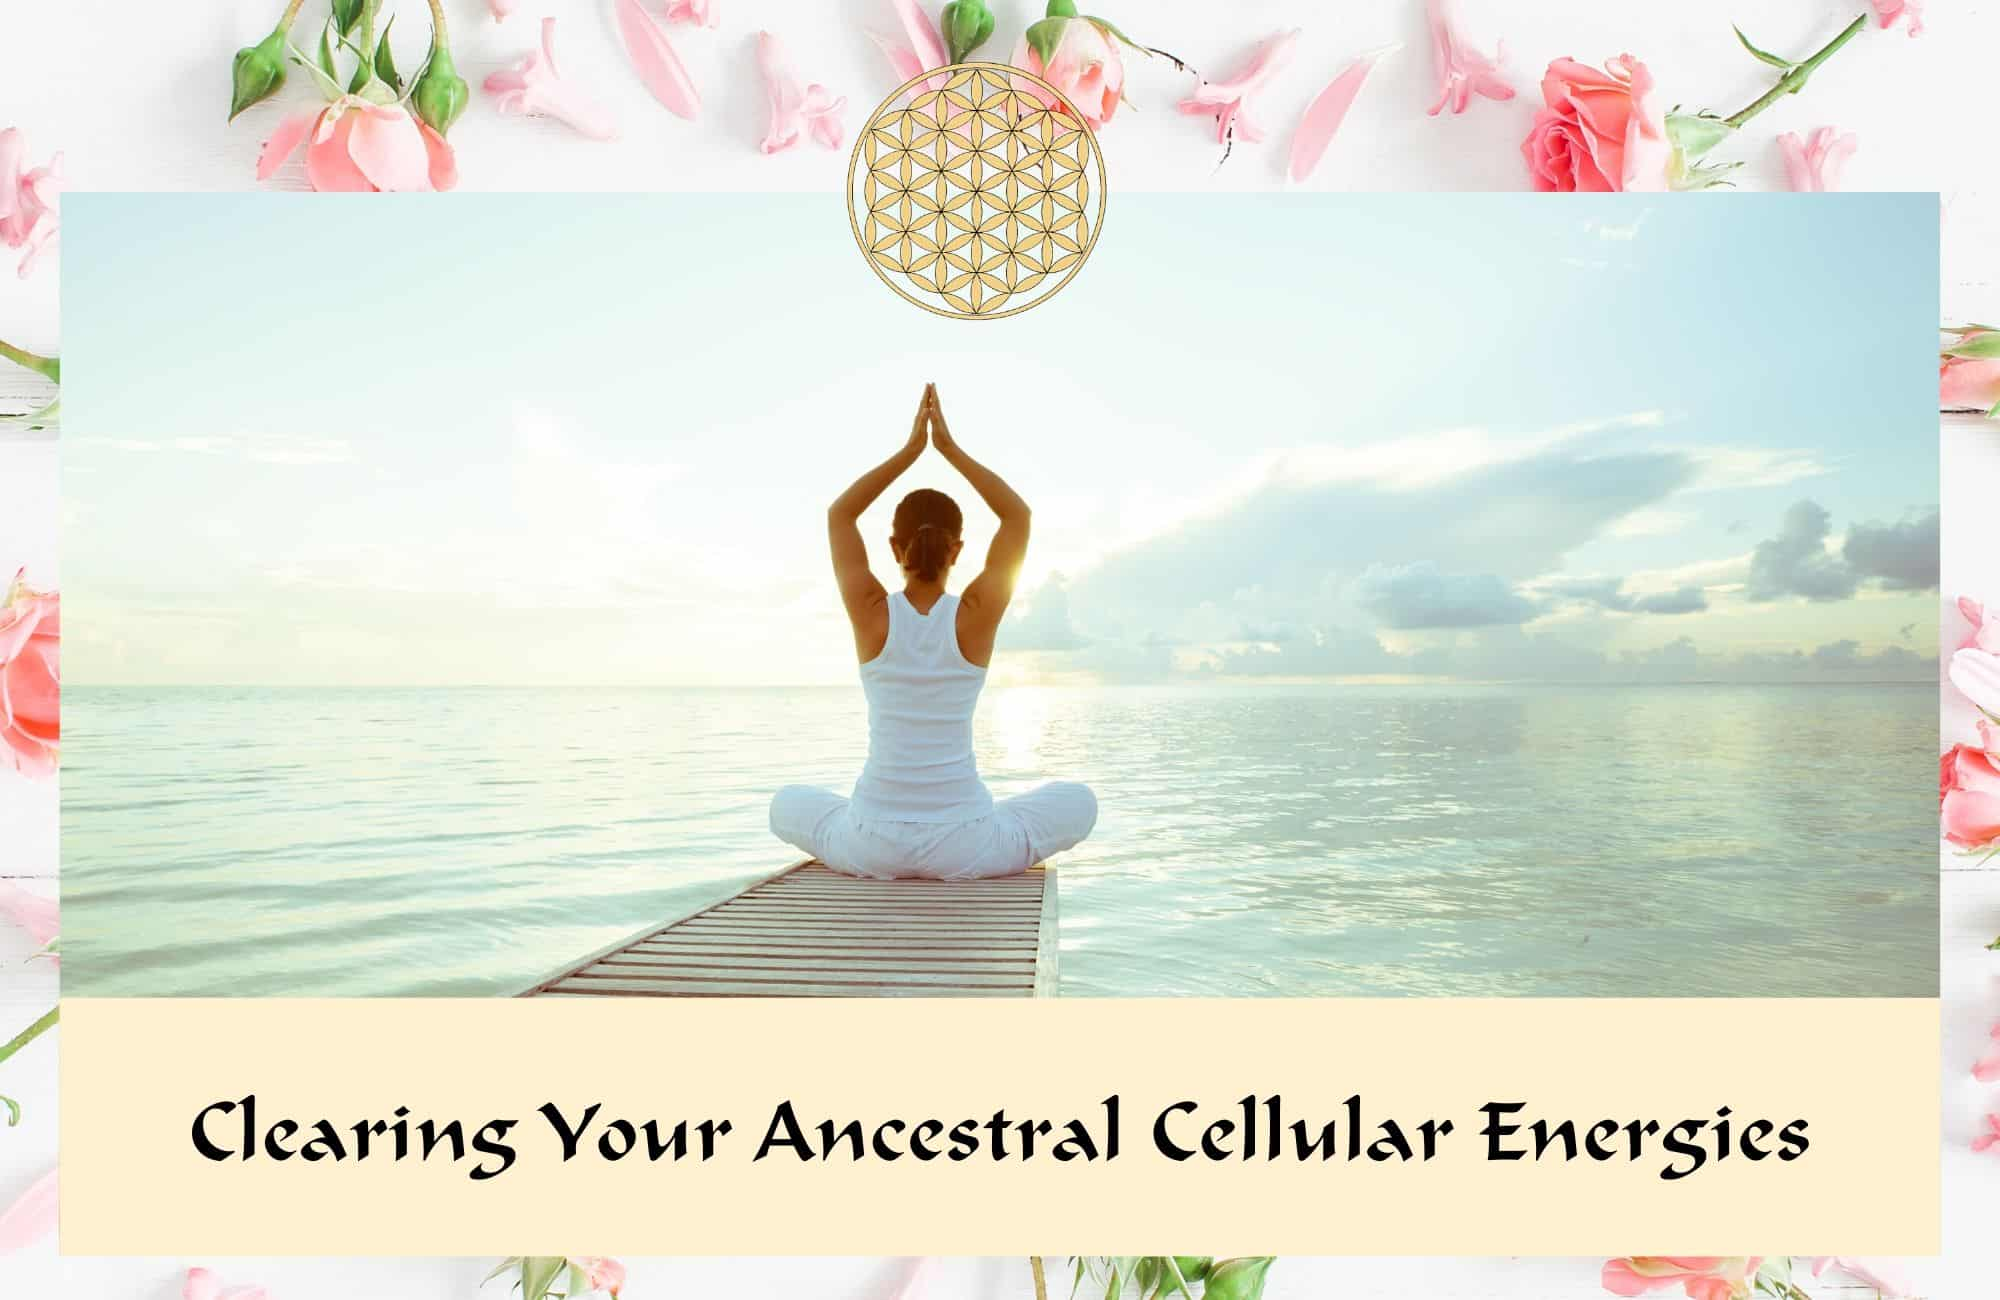 Clearing your ancestral cellular energies